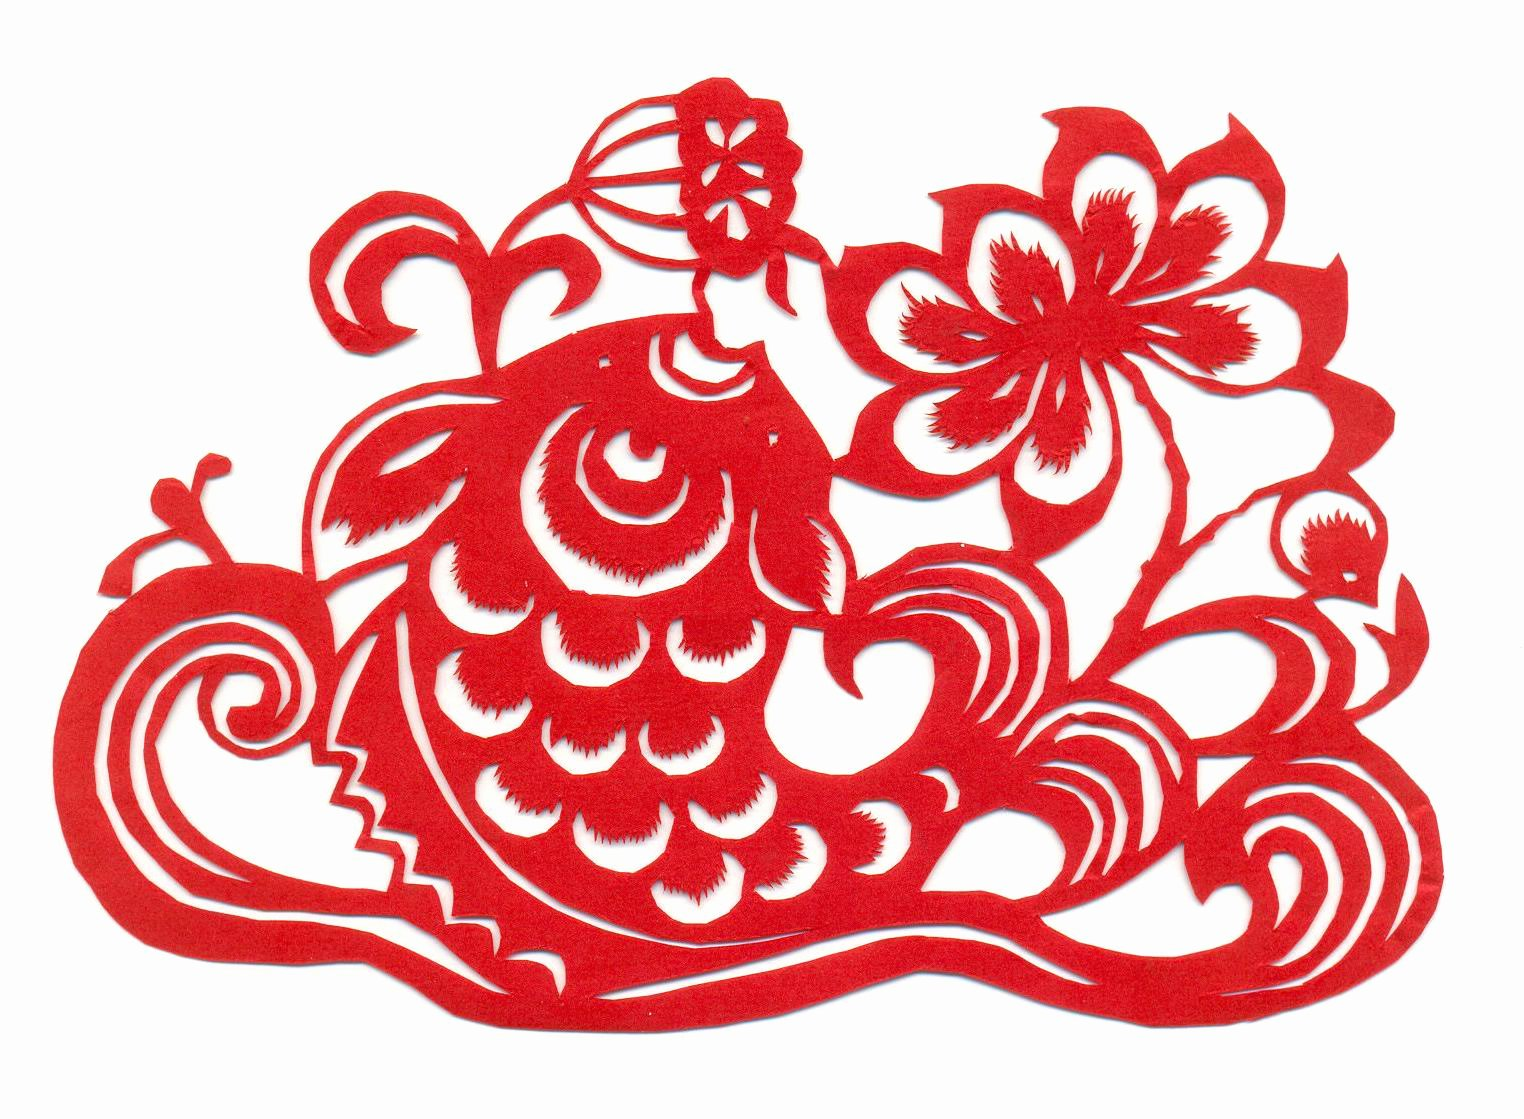 Chinese Paper Cutting Templates Awesome Chinese Paper Cutting Chinese Folk Paper Cut Scissor Cut